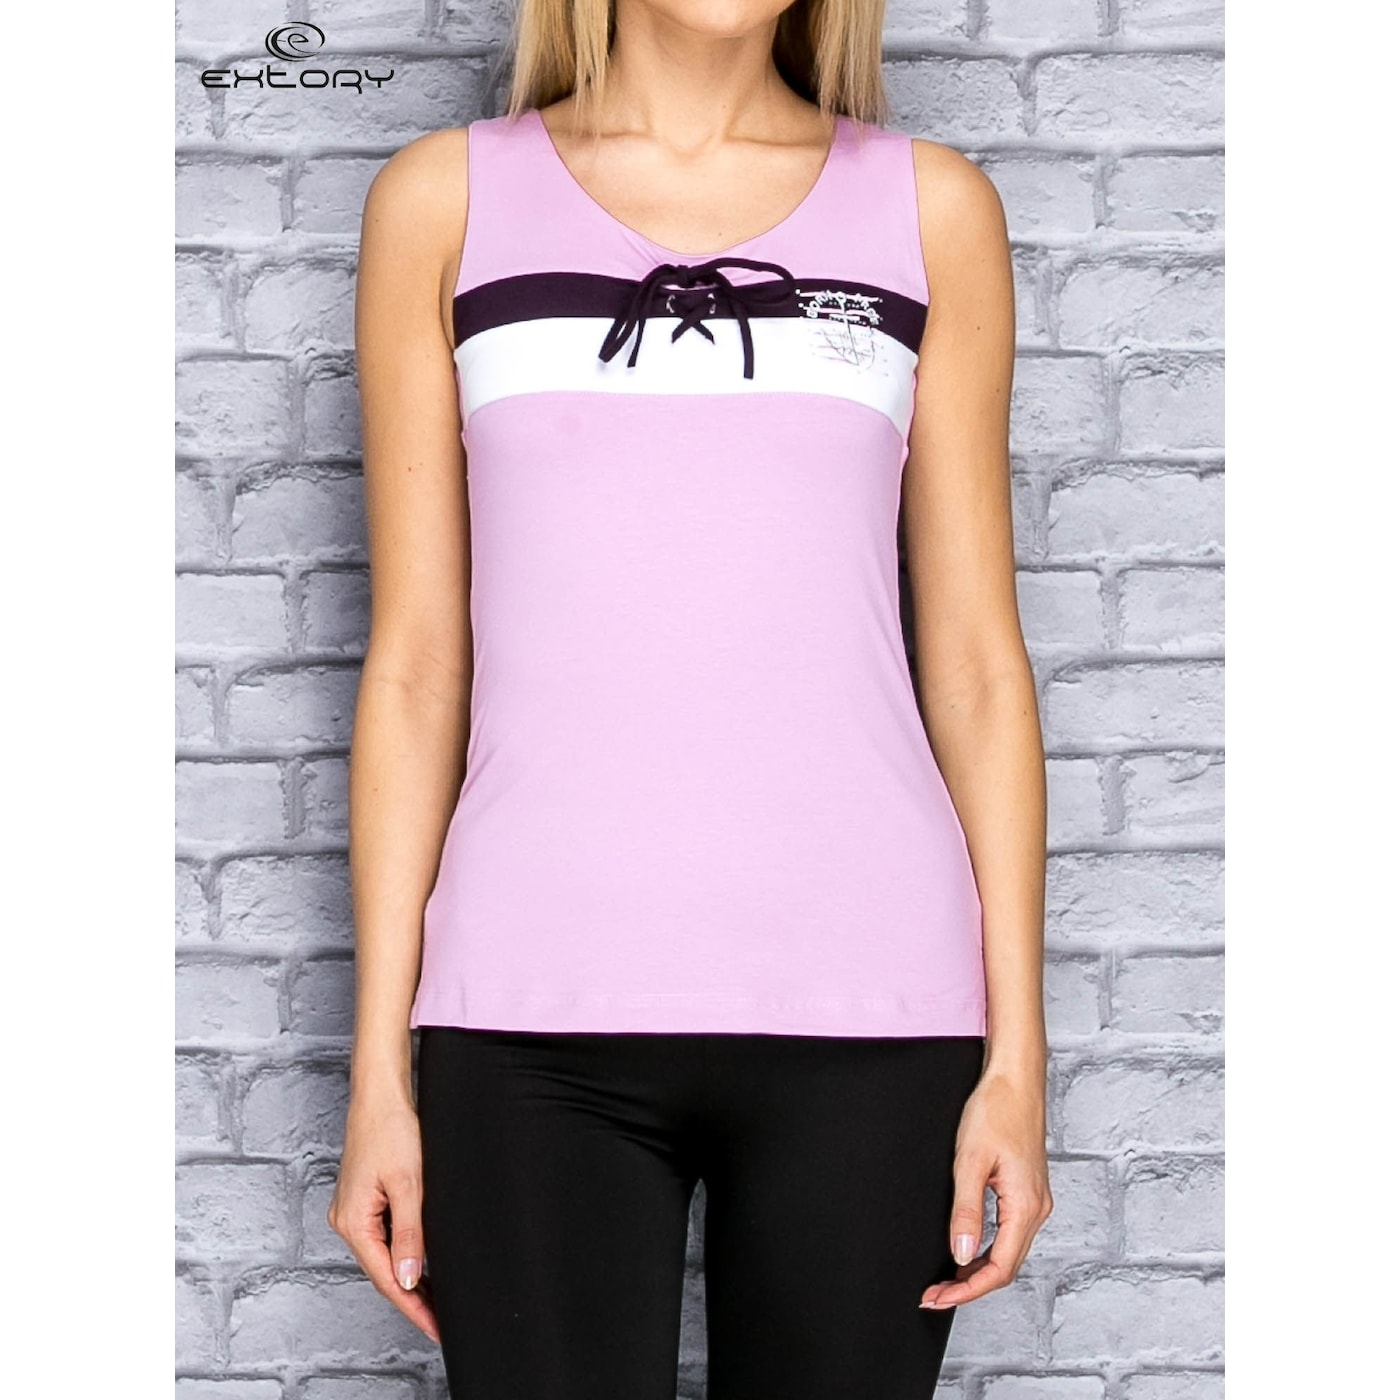 A purple sports top with a sailor style binding